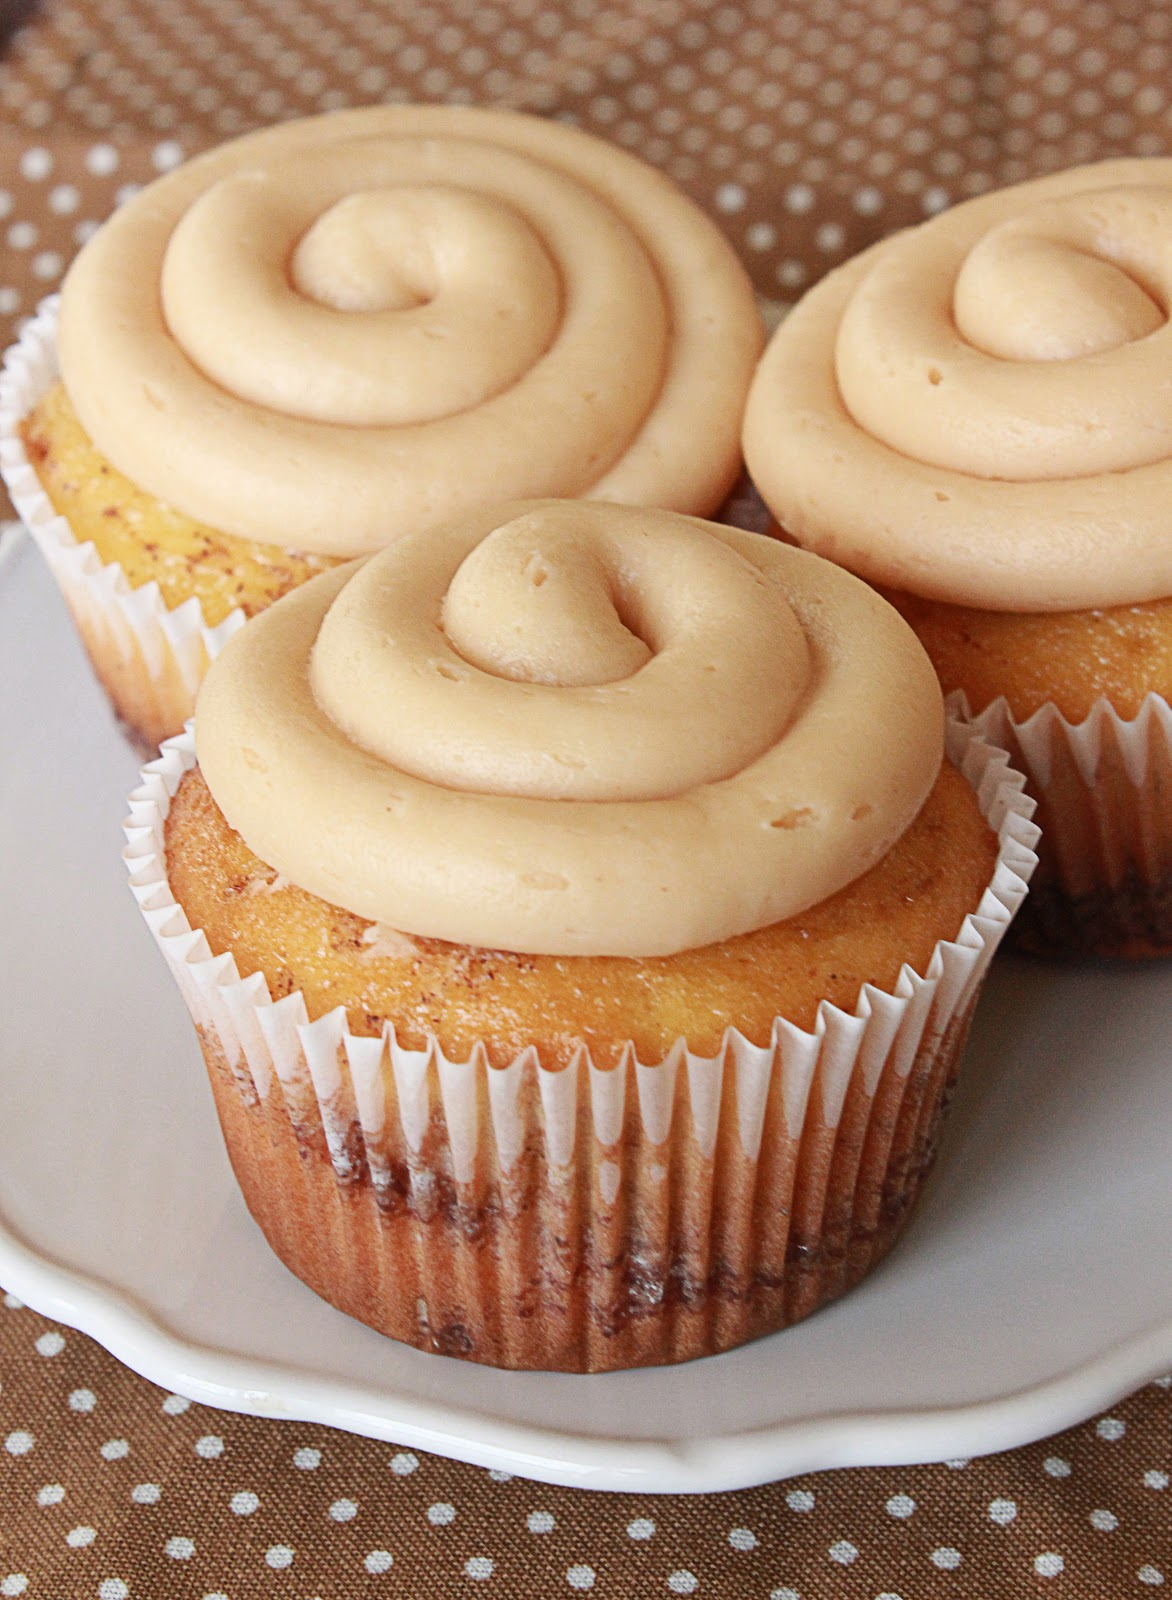 How To Make Banana Cupcakes With Yellow Cake Mix